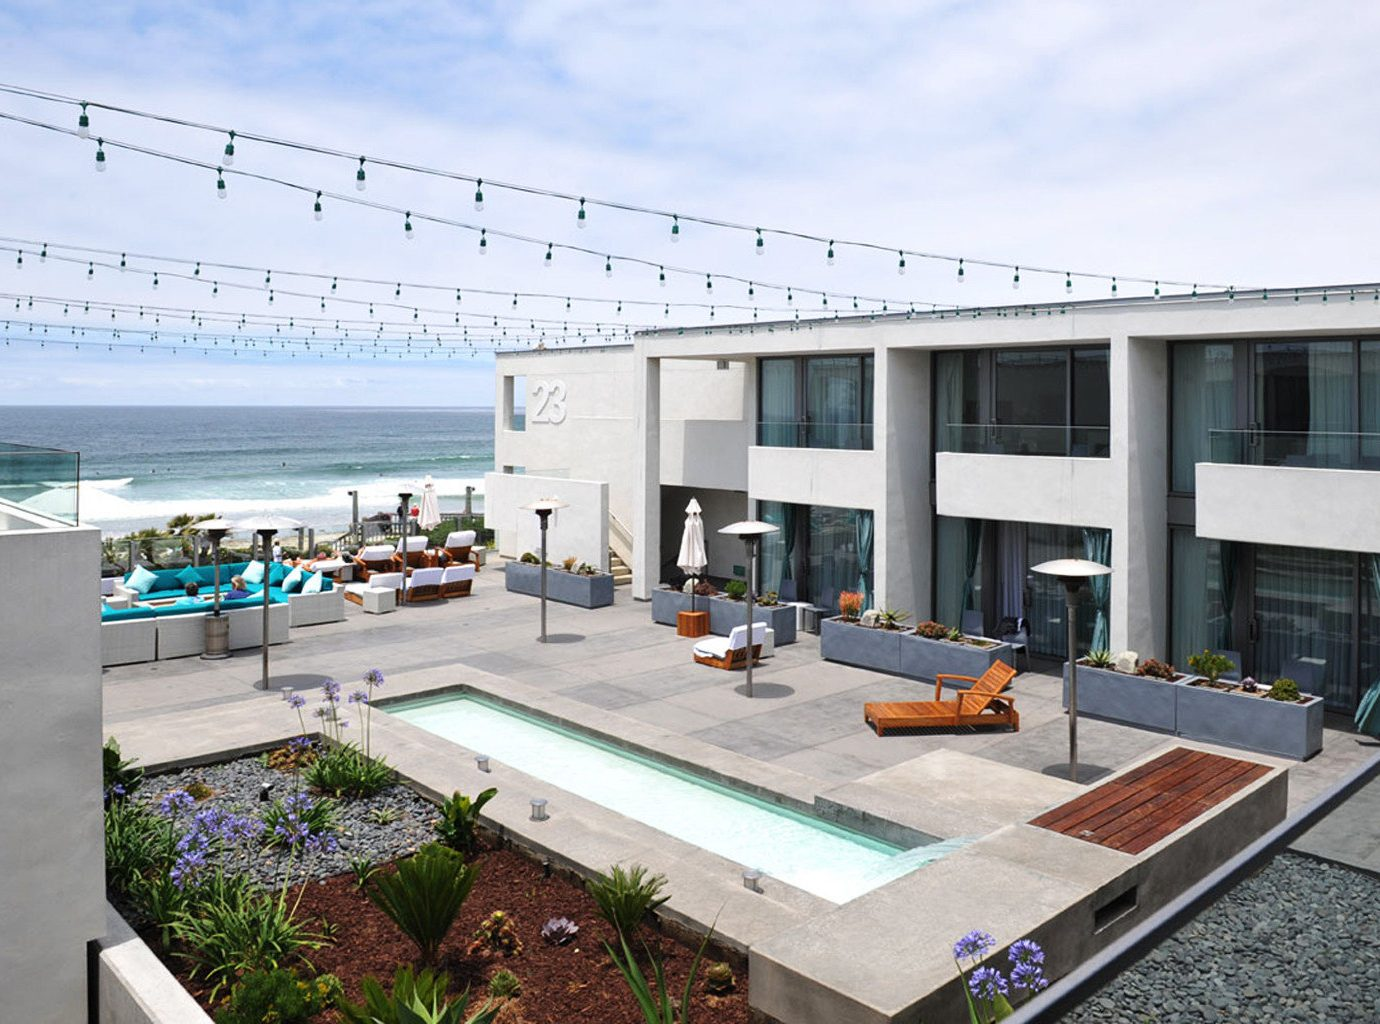 Architecture Beachfront Buildings Exterior Hotels Lounge Pool Resort Scenic views sky property real estate condominium facade headquarters interior design Design